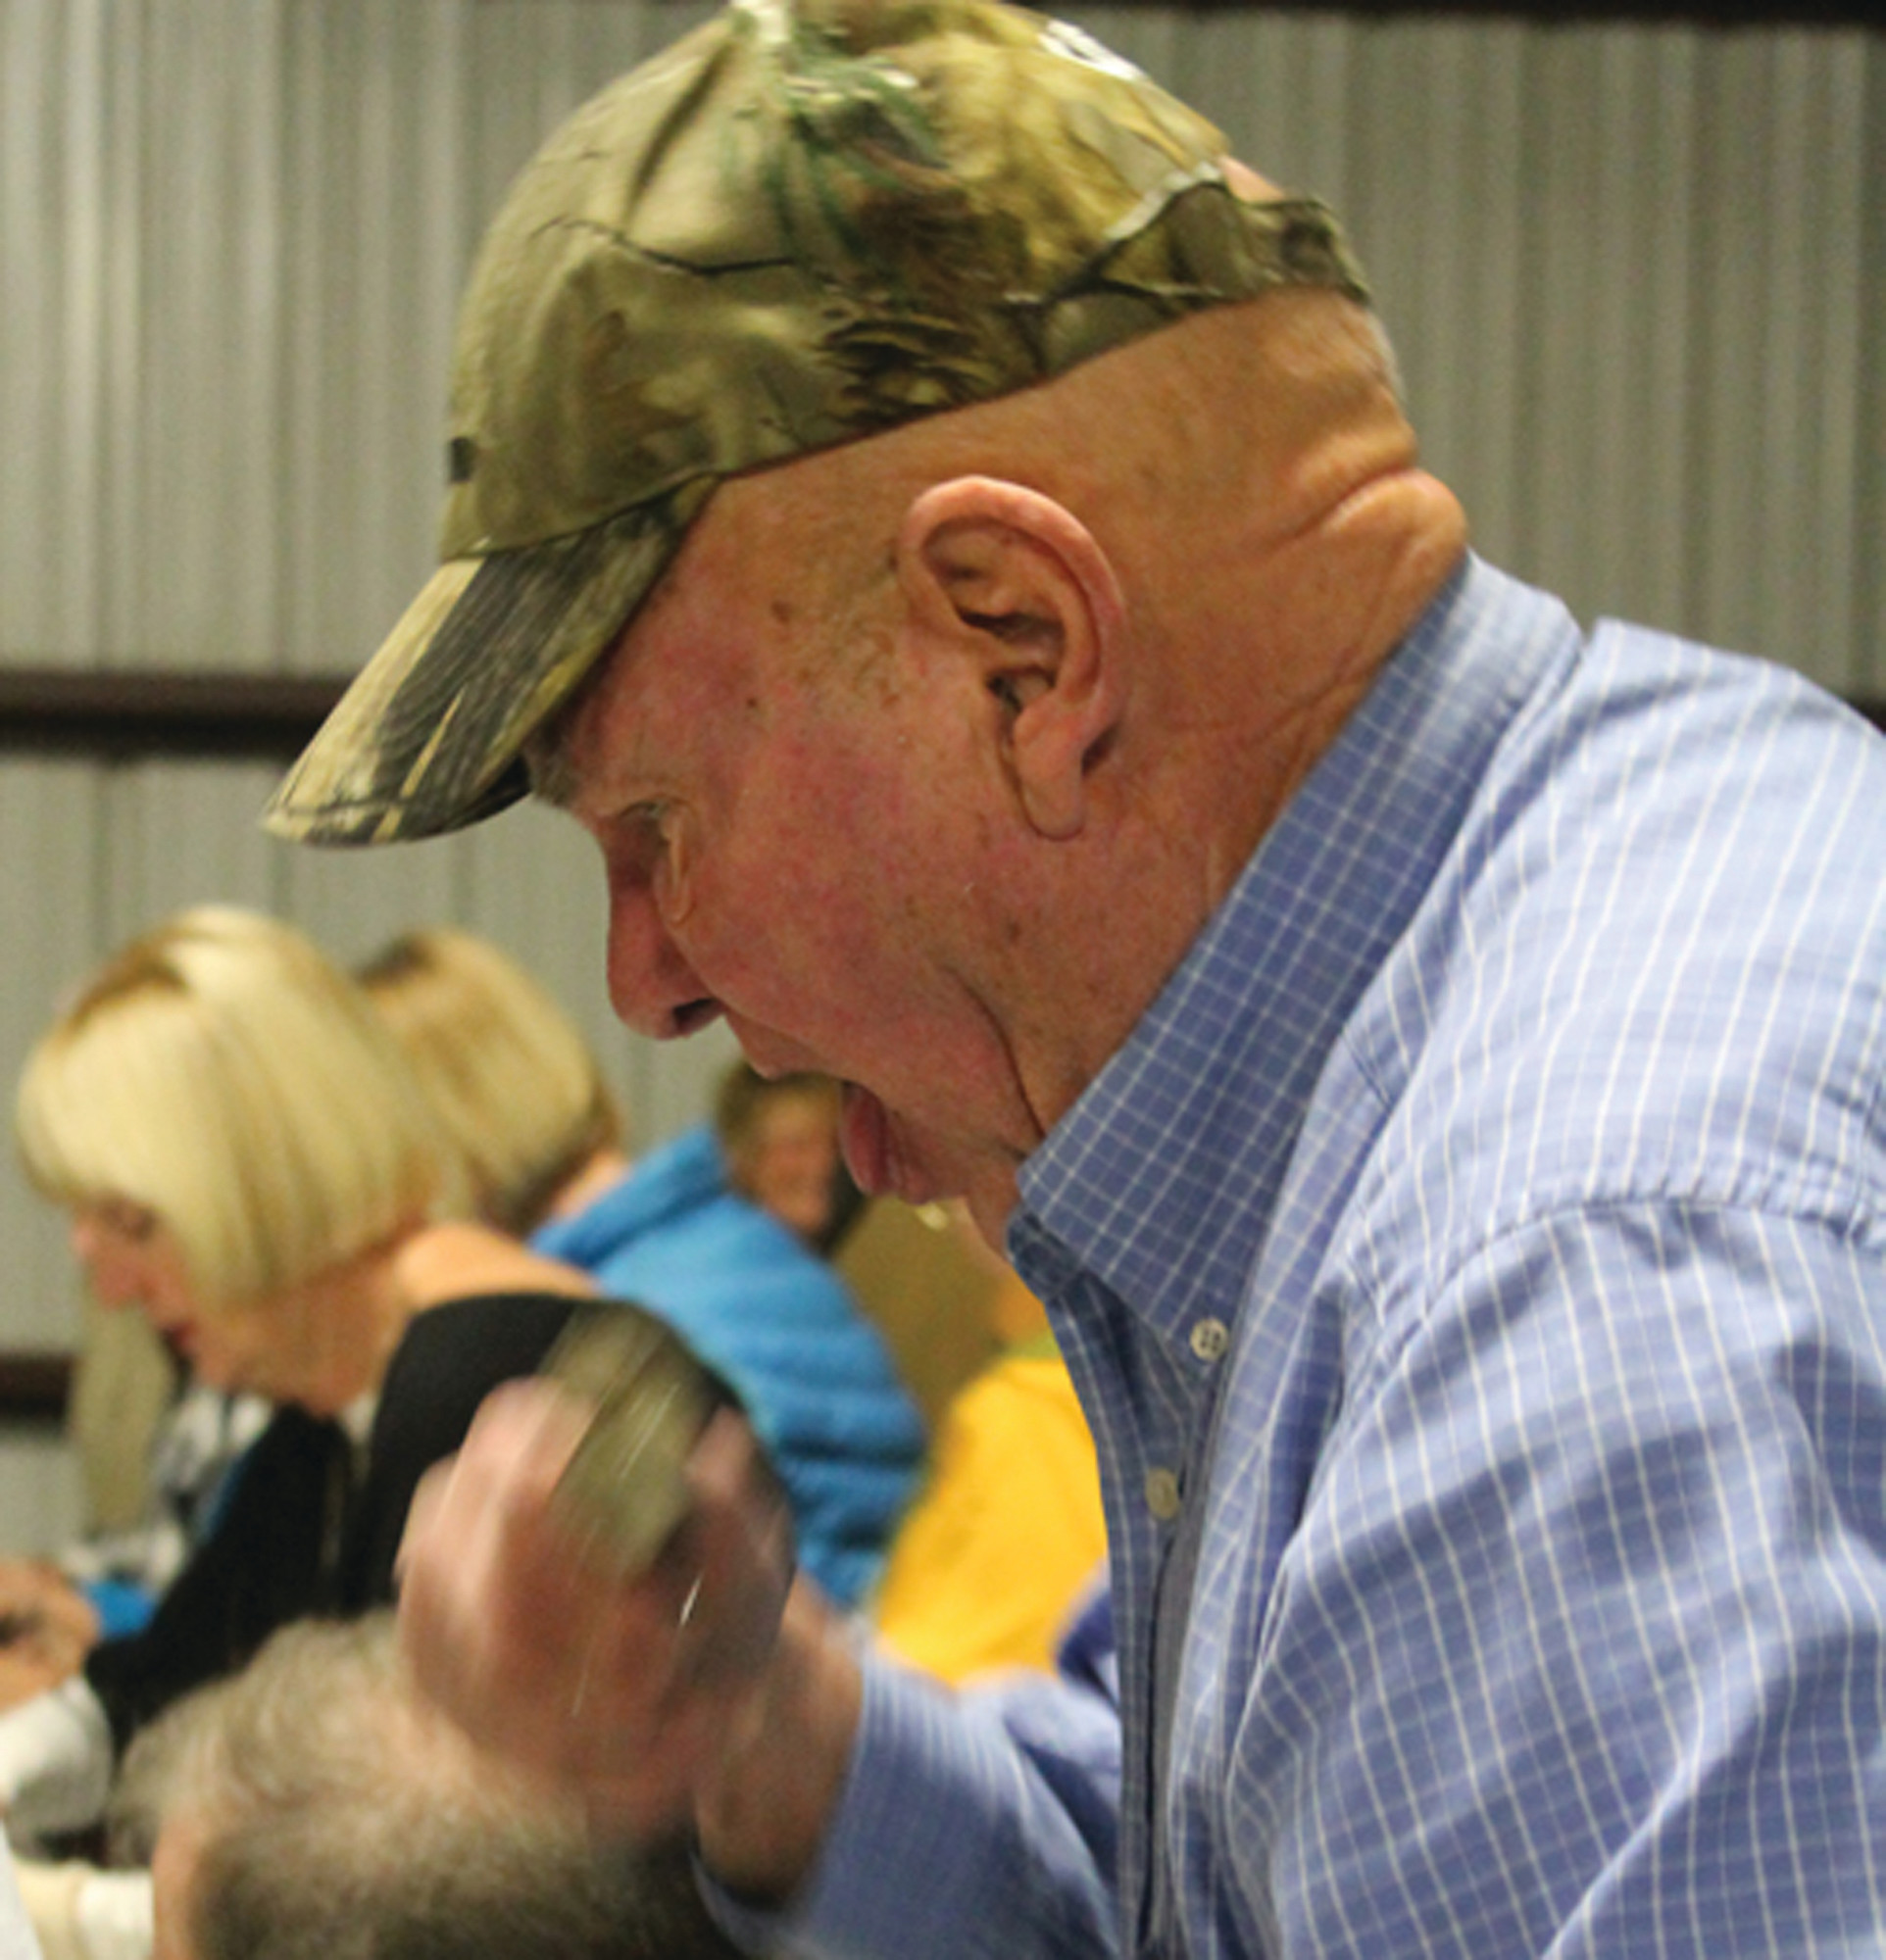 Clarendon County volunteer firefighter Buddy Way enjoyed the steaming hot oysters at the annual oyster roast.